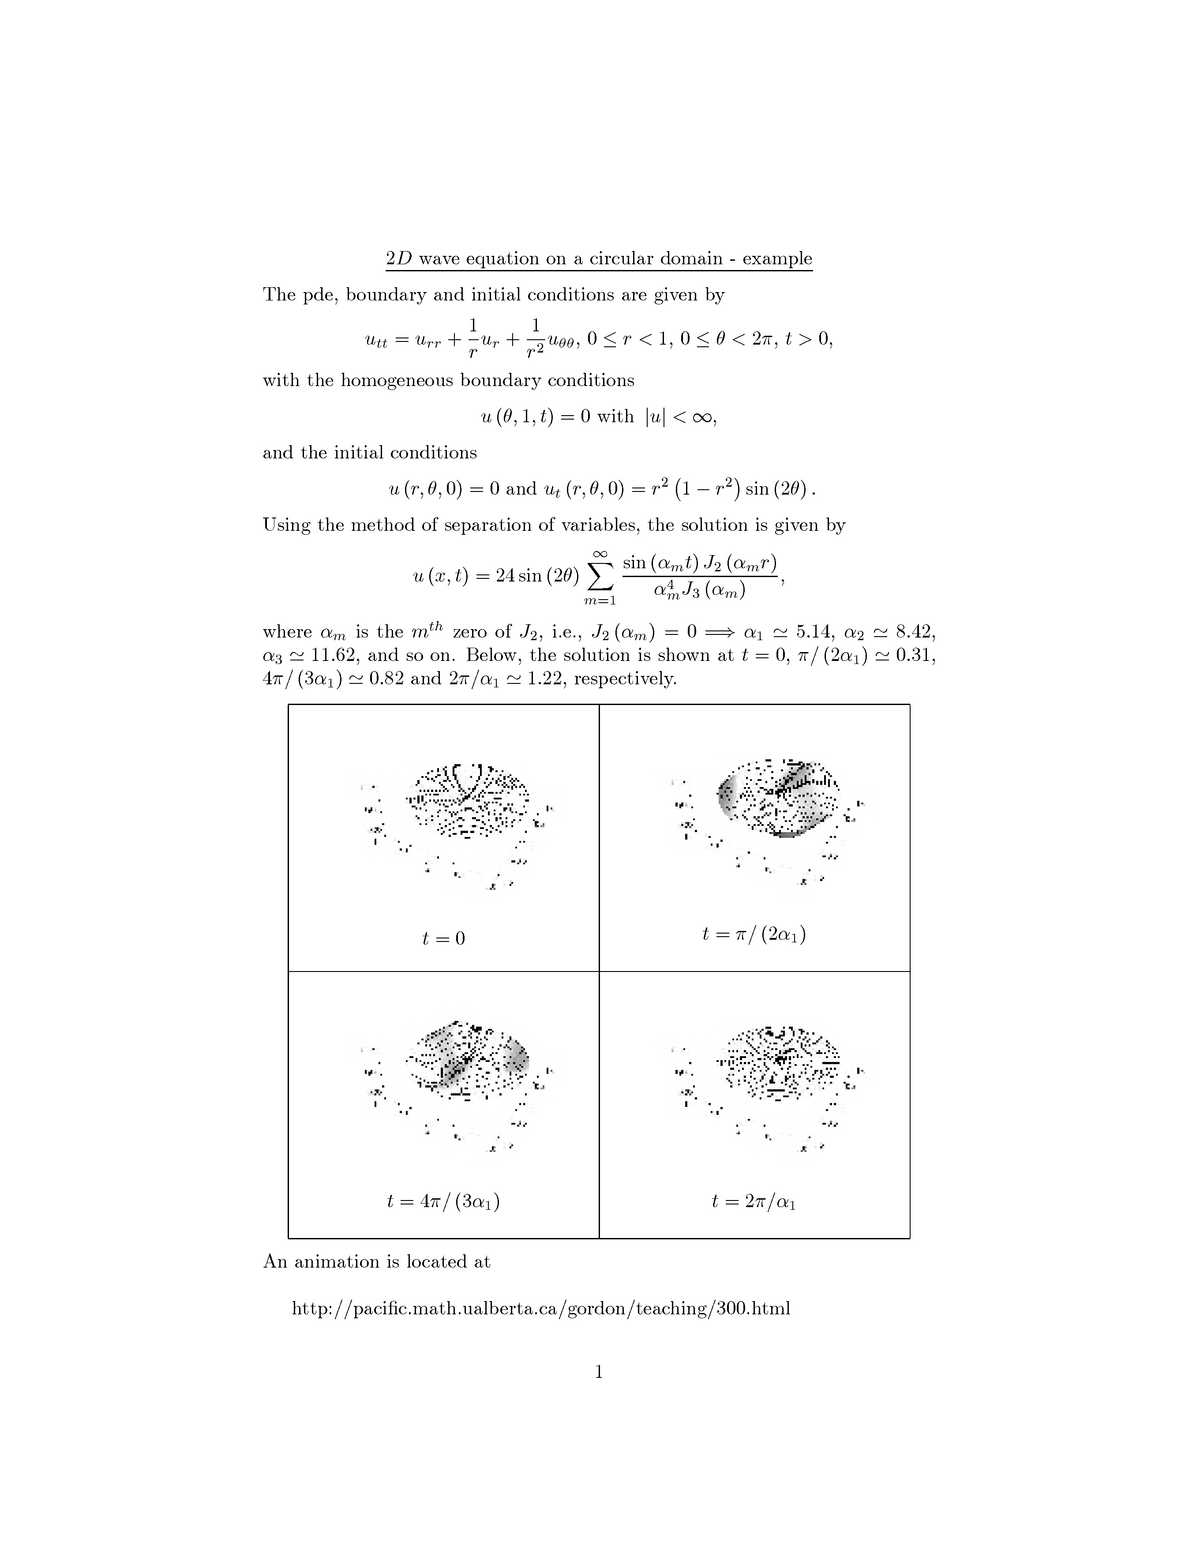 Lecture notes, - 2d wave equation on a circular domain - example